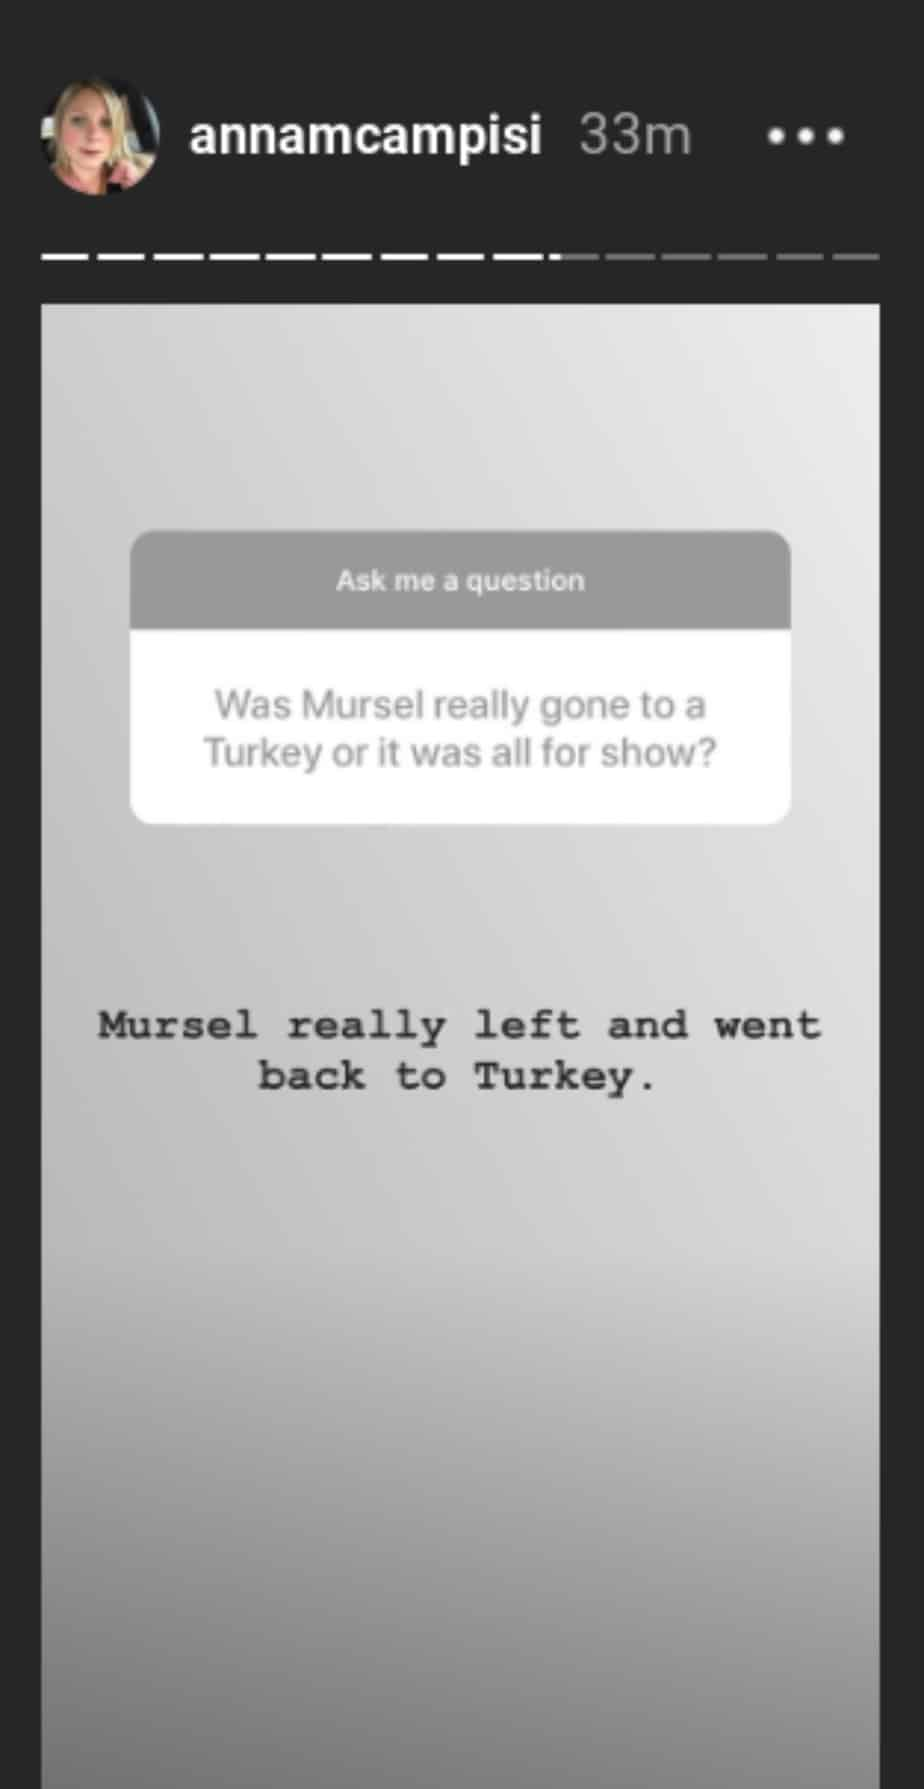 Anna insists that Mursel really did go back to Turkey